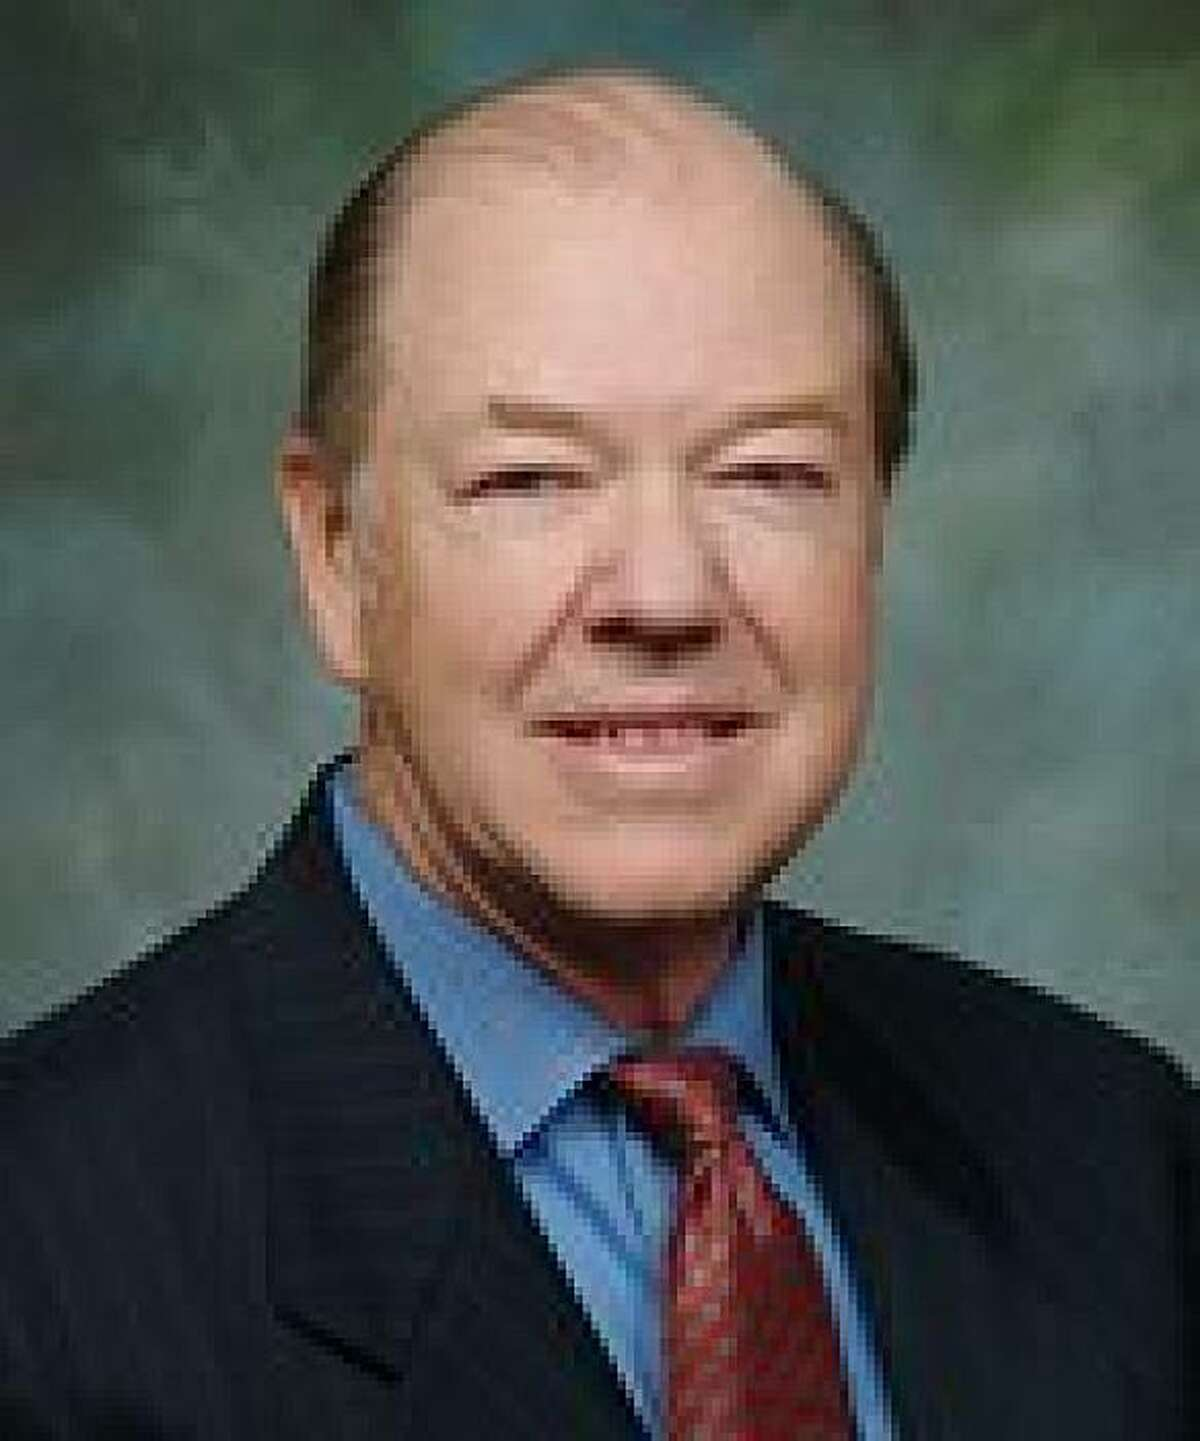 Albert Halluin, a prominent Bay Area patent attorney and pilot, died in a small plane crash near Groveland, where he owned a home.